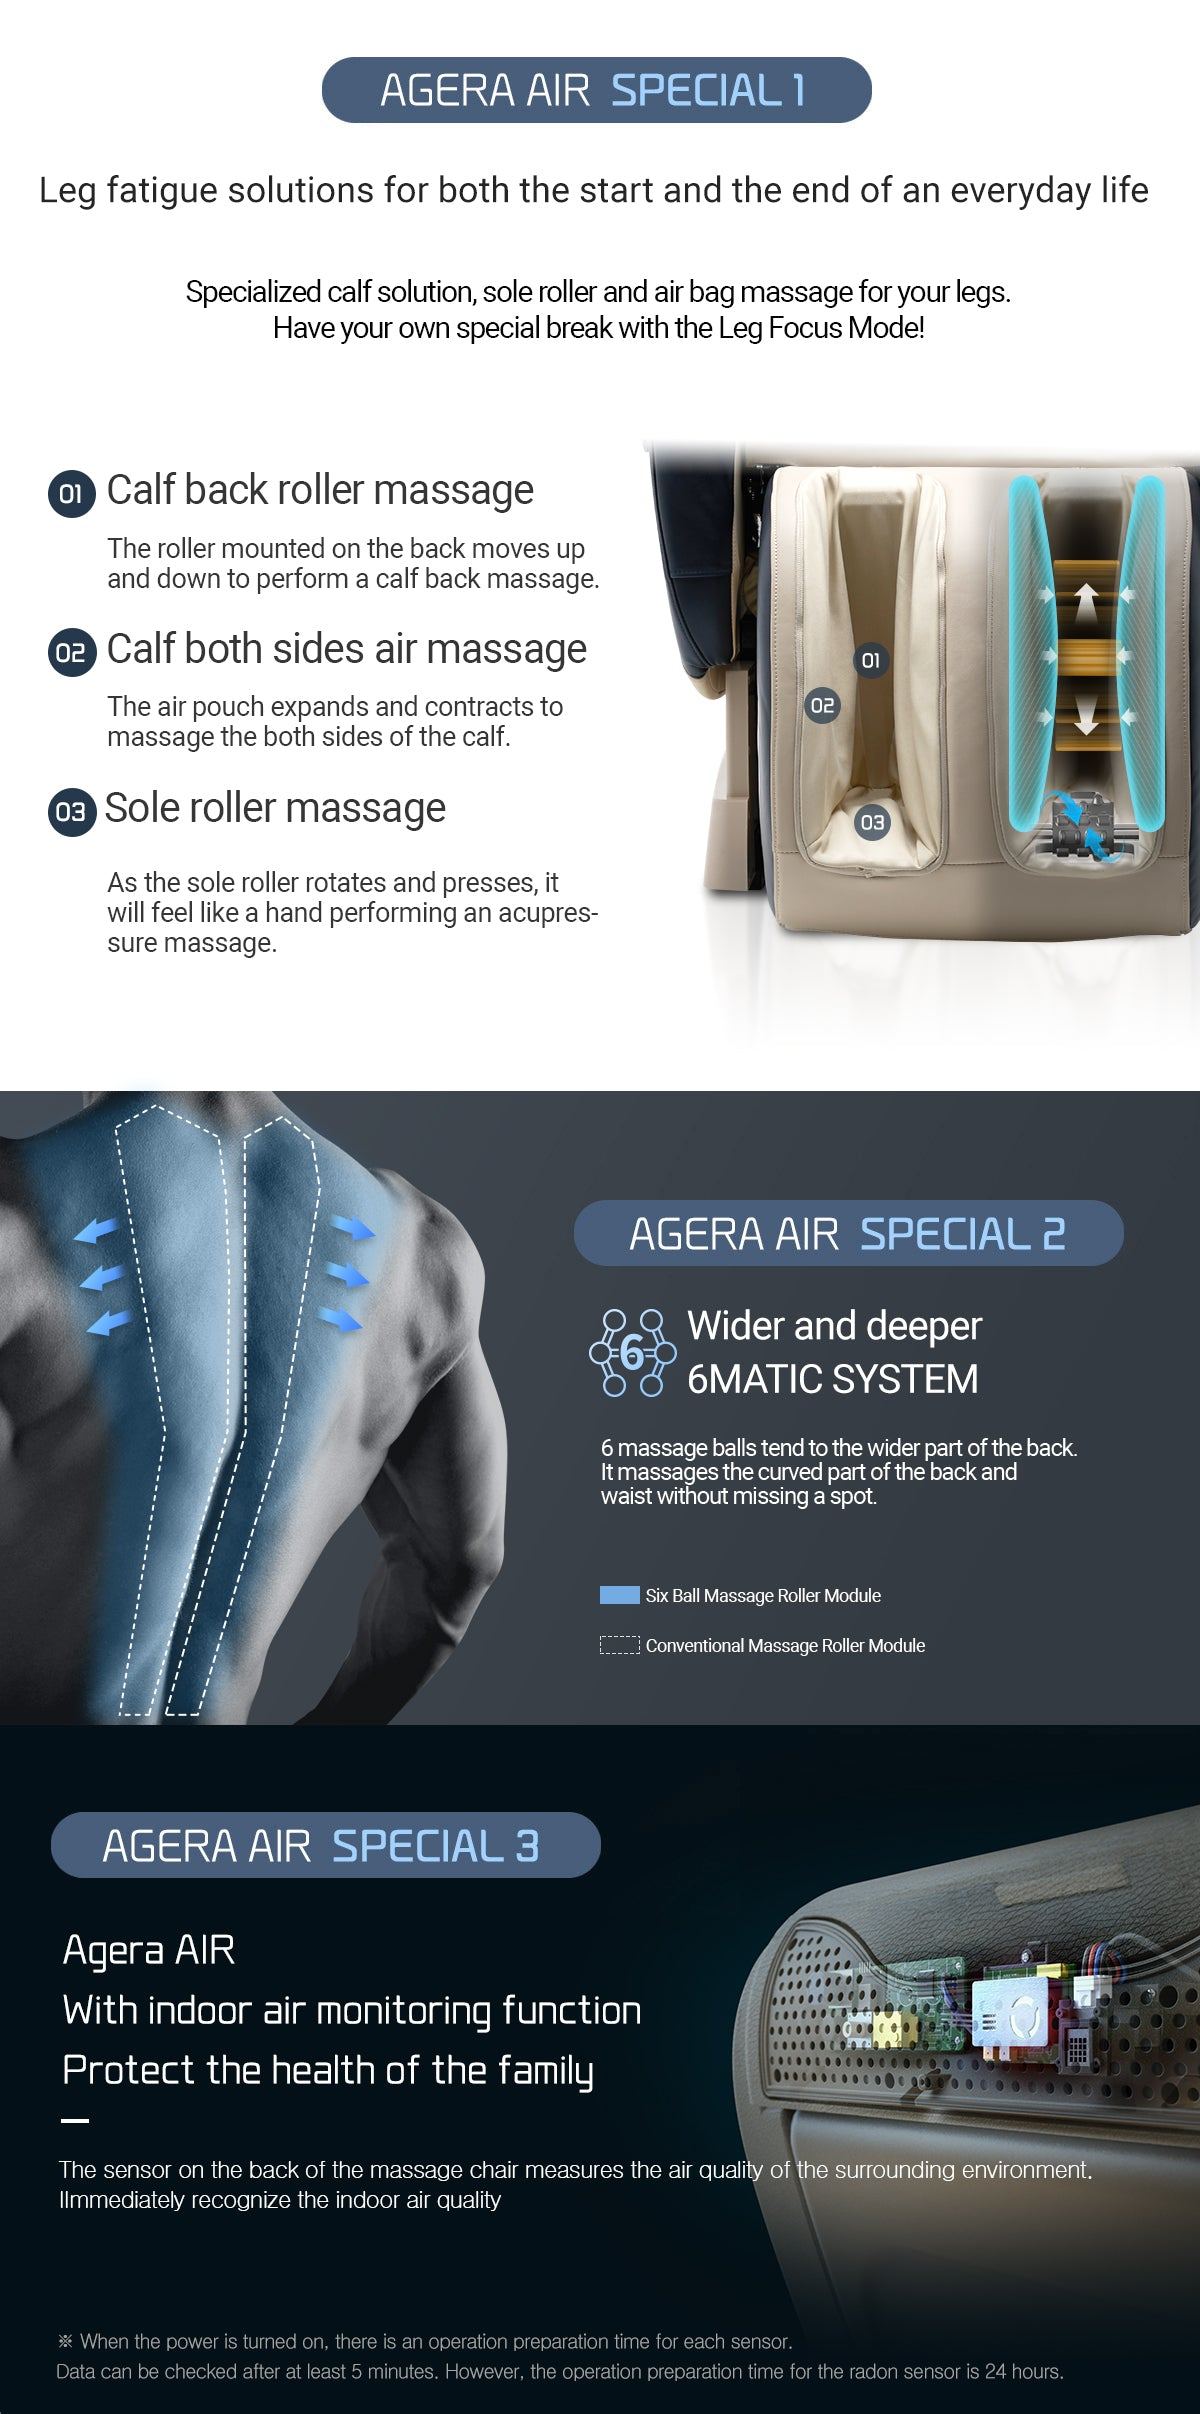 Agera Air's Special Functions